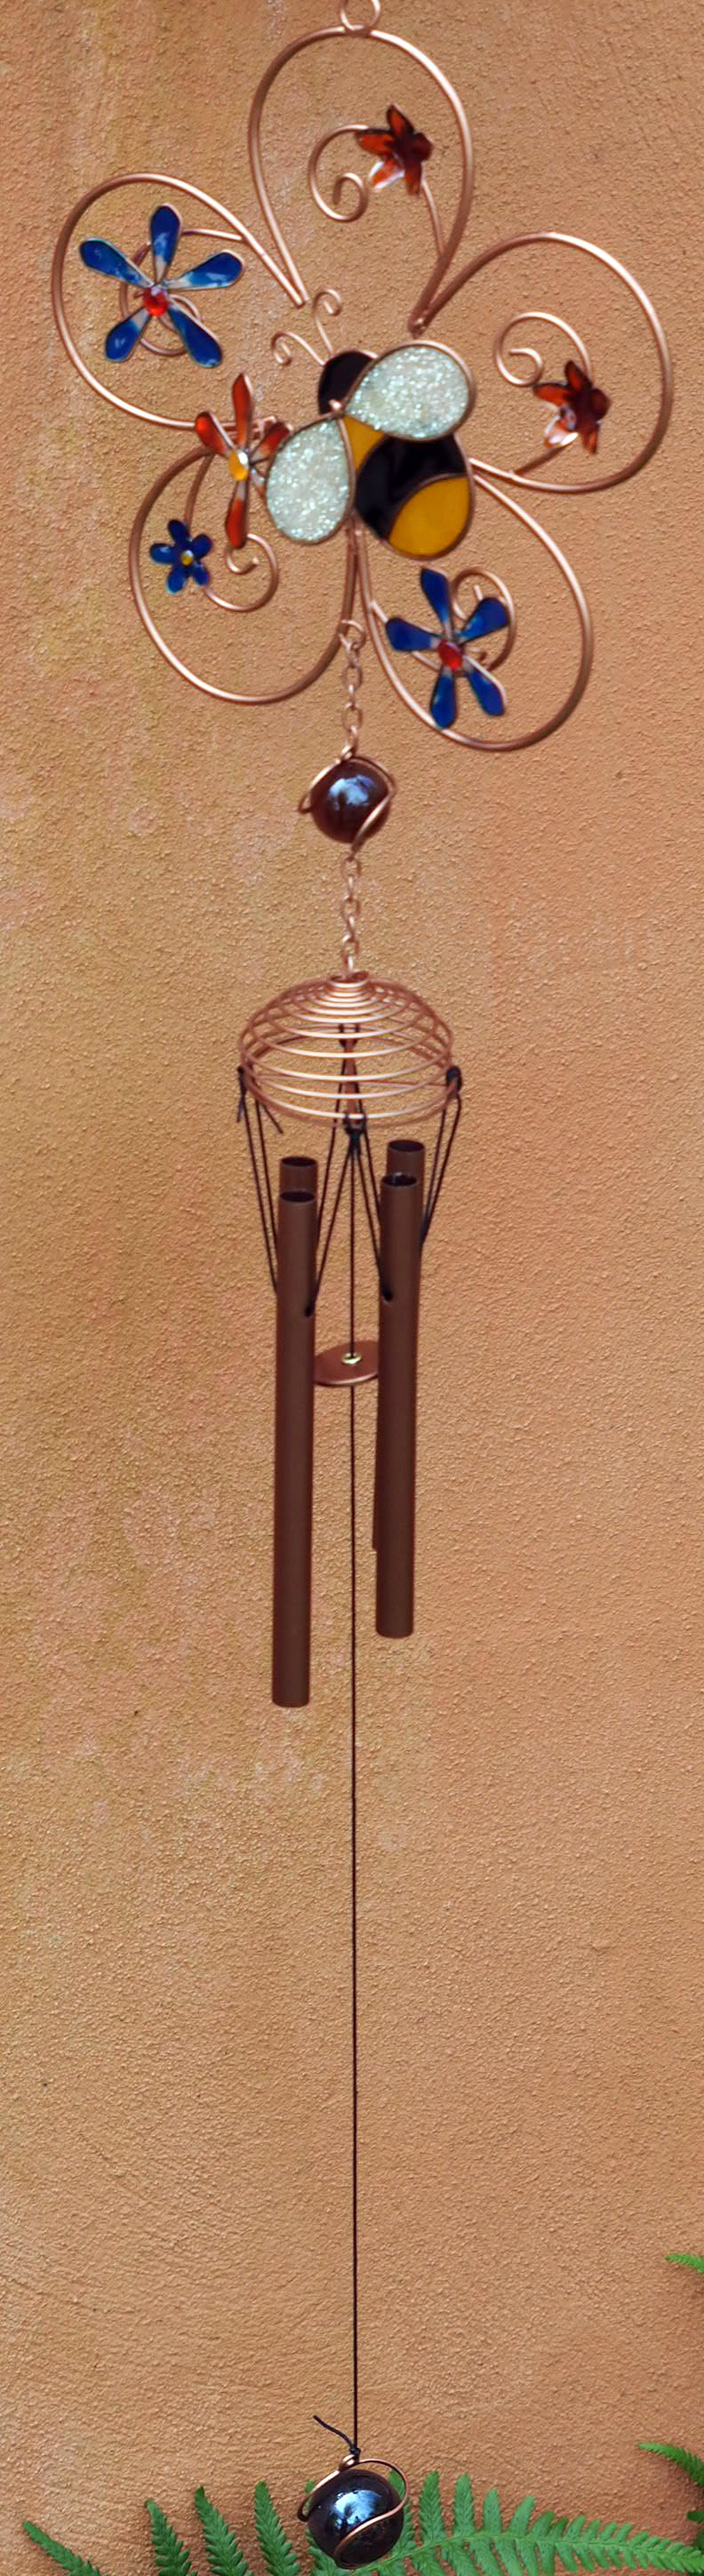 Large-Metal-amp-Glass-Hanging-Sun-Catcher-Wind-Chime-Home-Garden-Decorations thumbnail 43